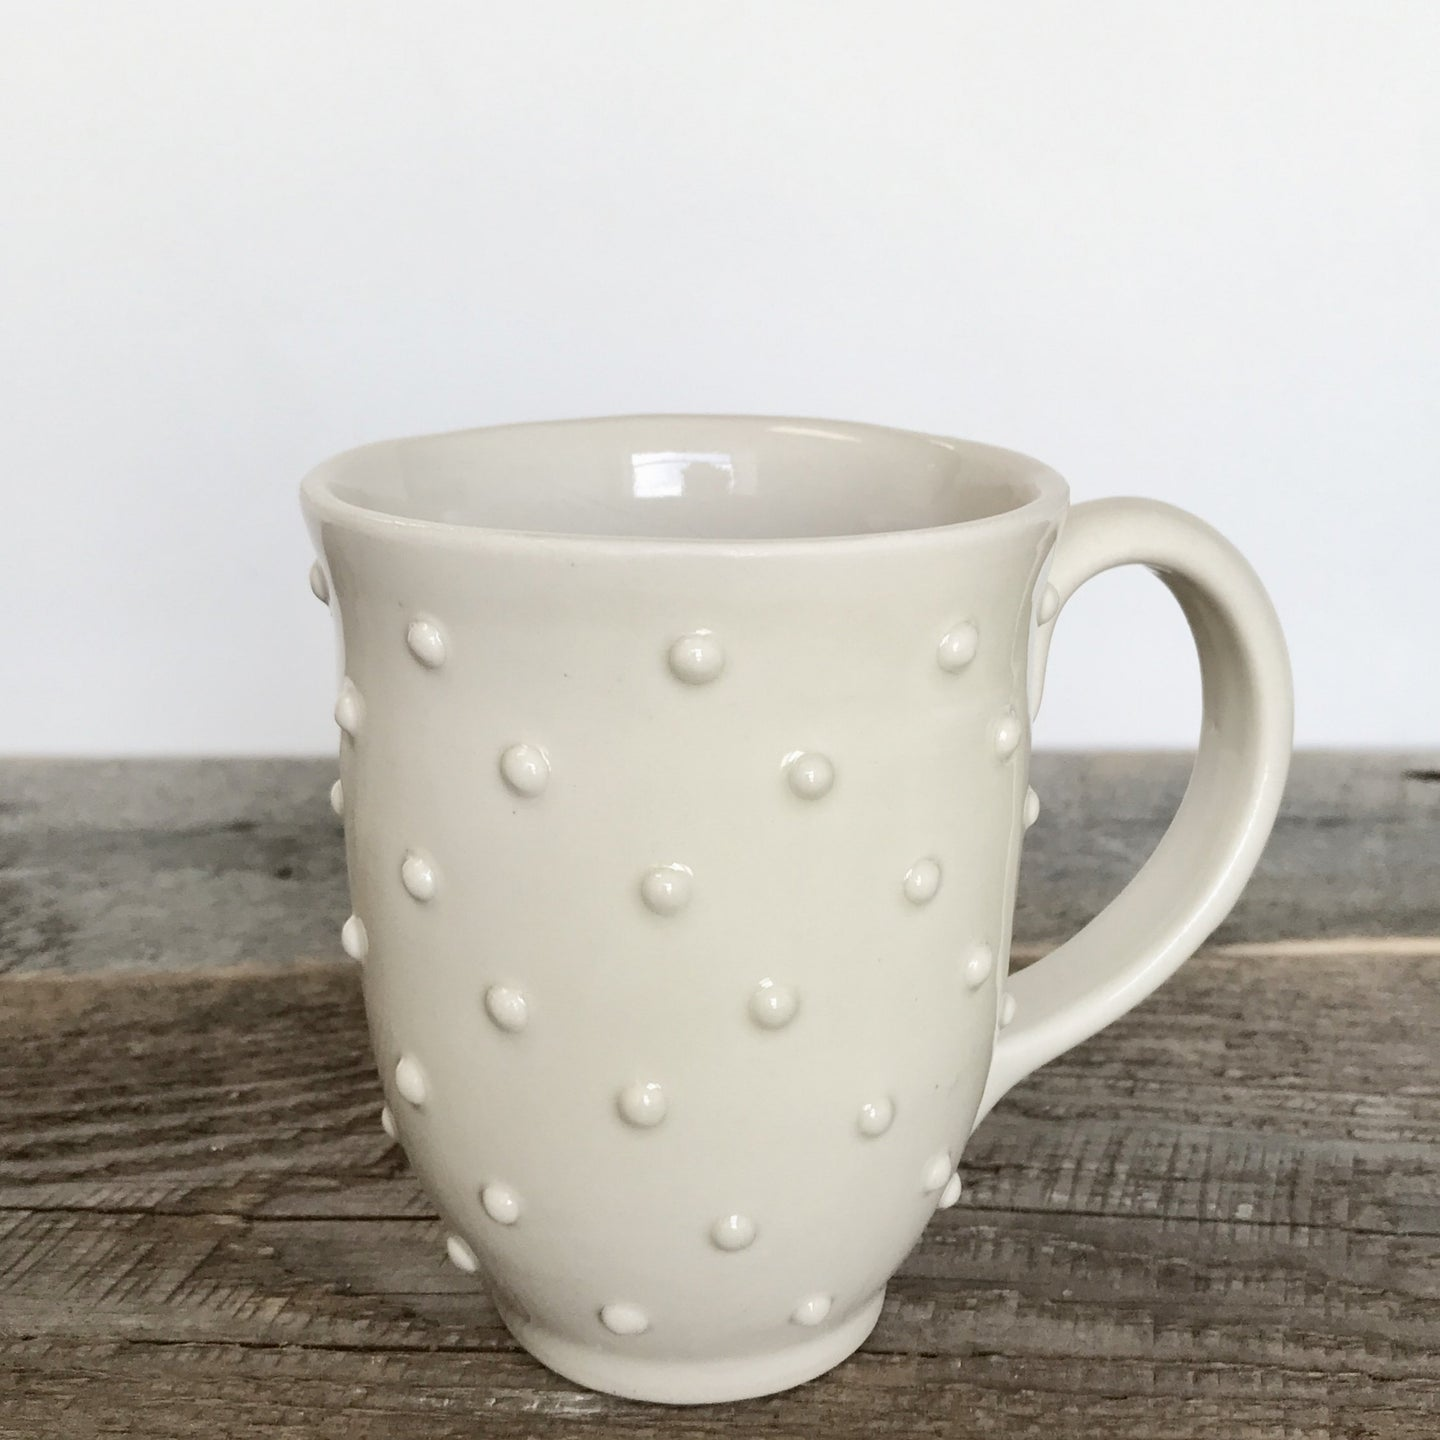 Handcrafted Carved White Mug with Dots